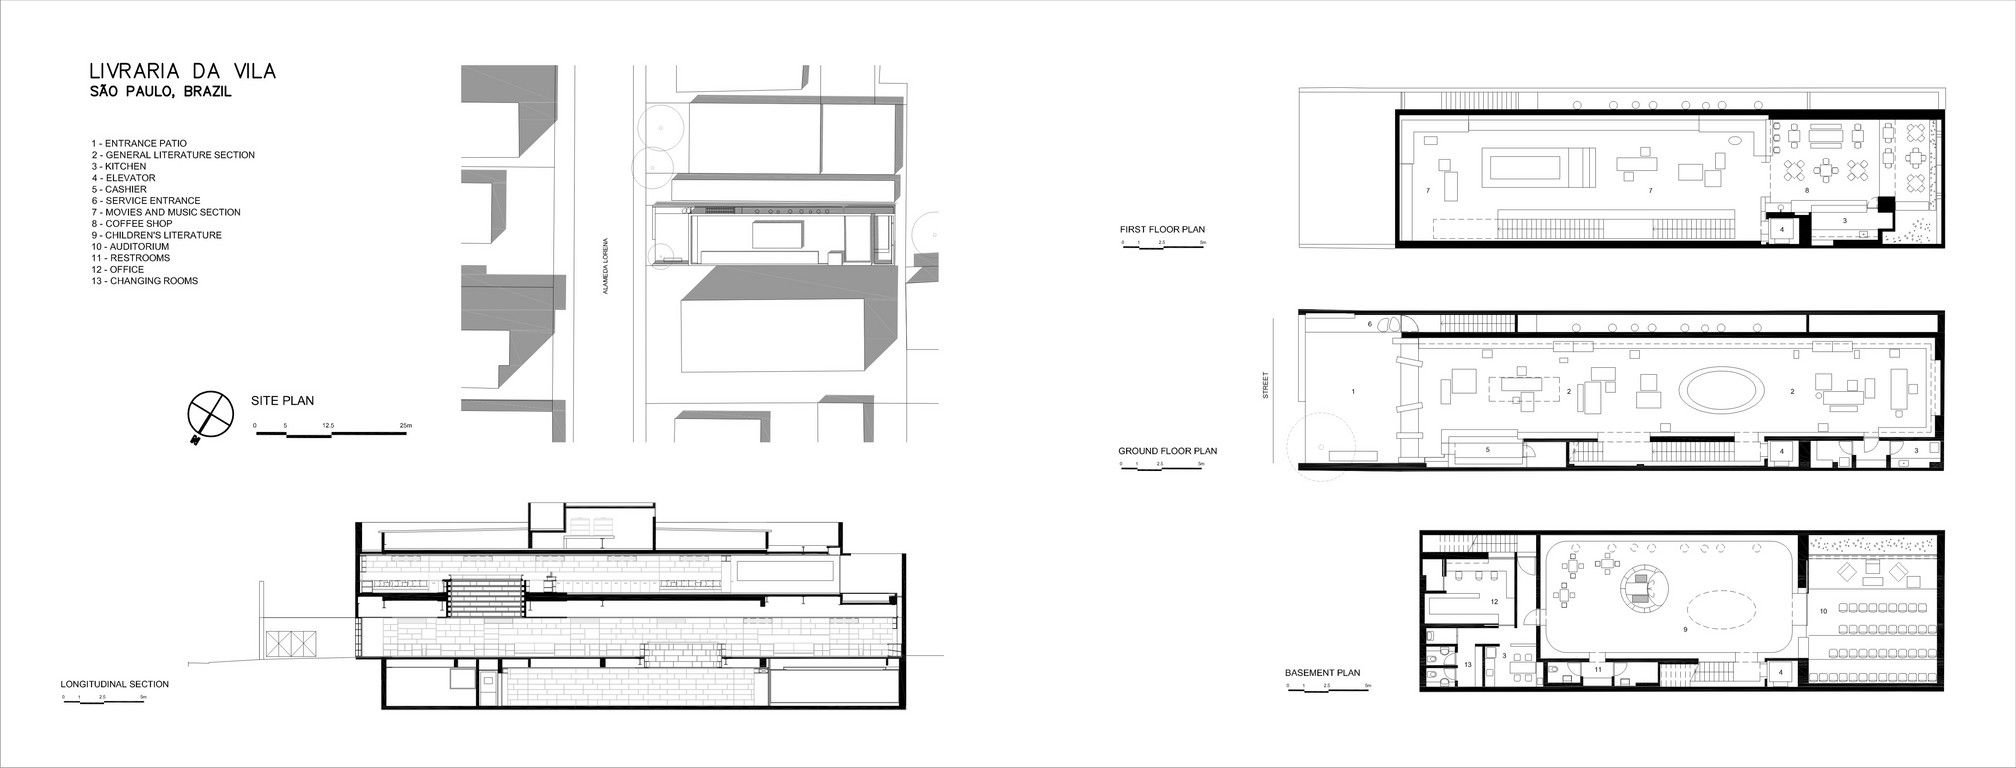 00a8759b6 Livraria da Vila - Issay Weinfeld - Drawings - plans and section ...